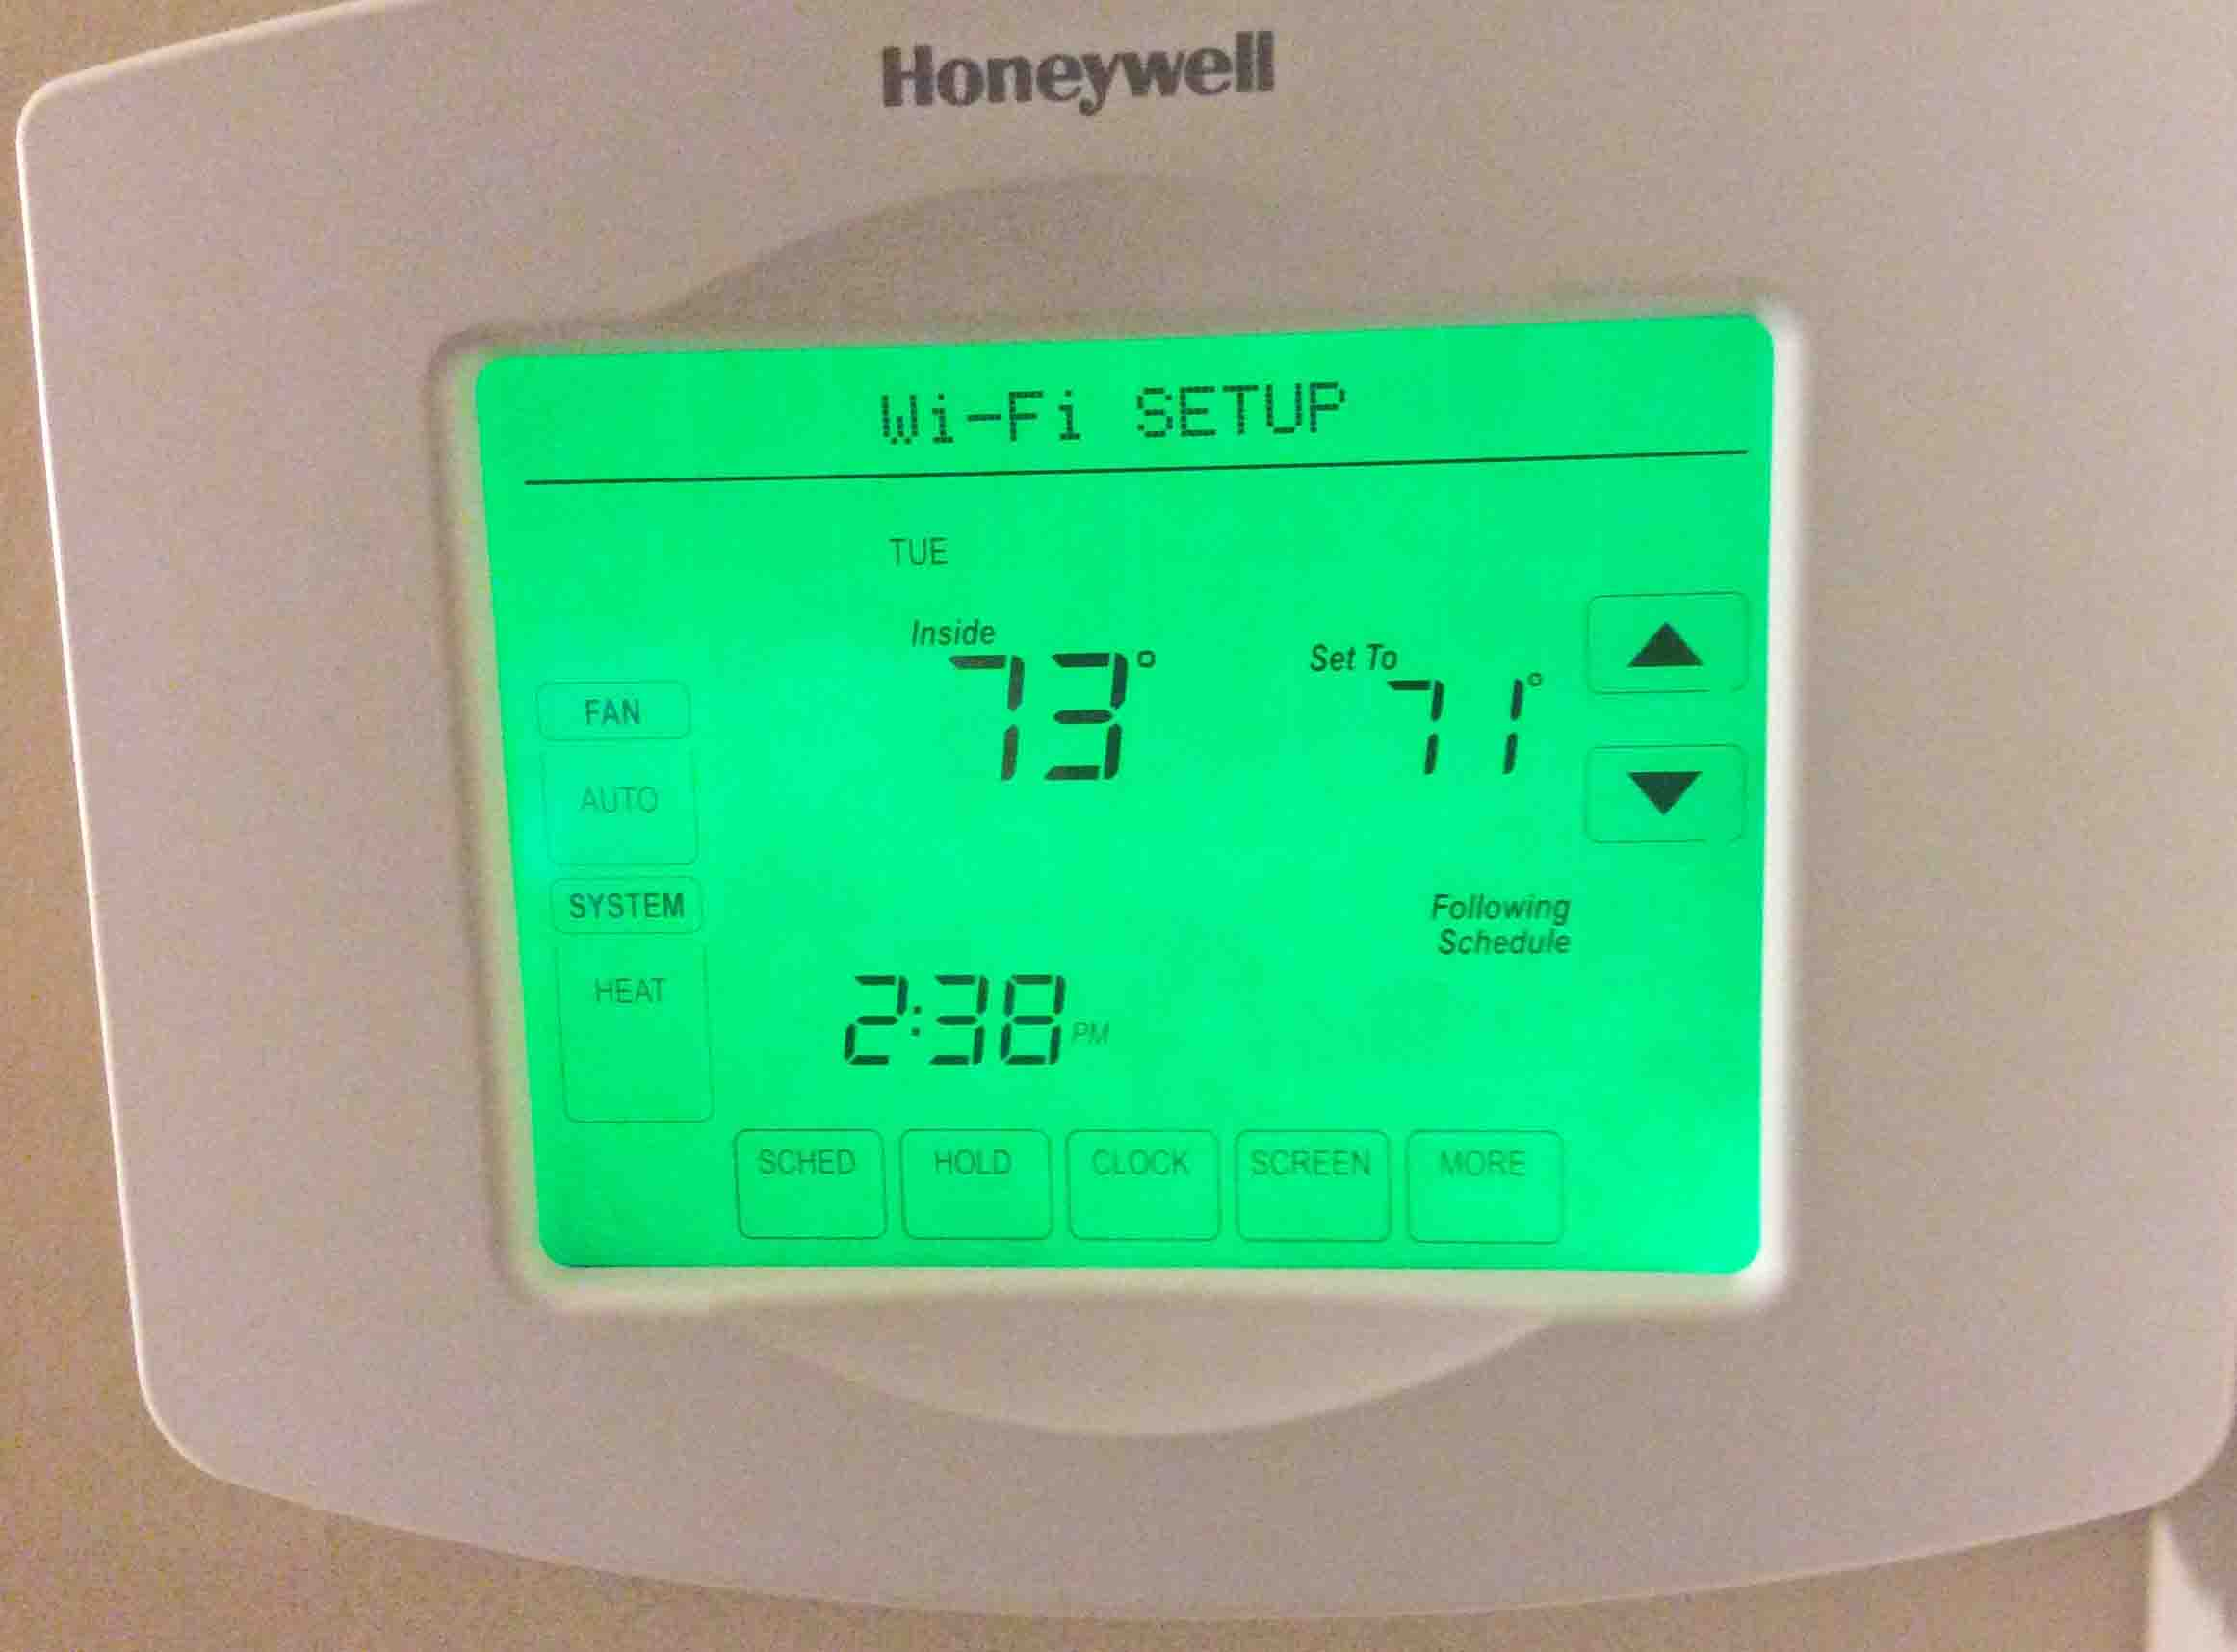 Honeywell Wifi Thermostat Rth8580wf Manual User Guide That Mercury Instructions Change Wireless Network On Rh Tomstek Us Troubleshooting Rth6580wf